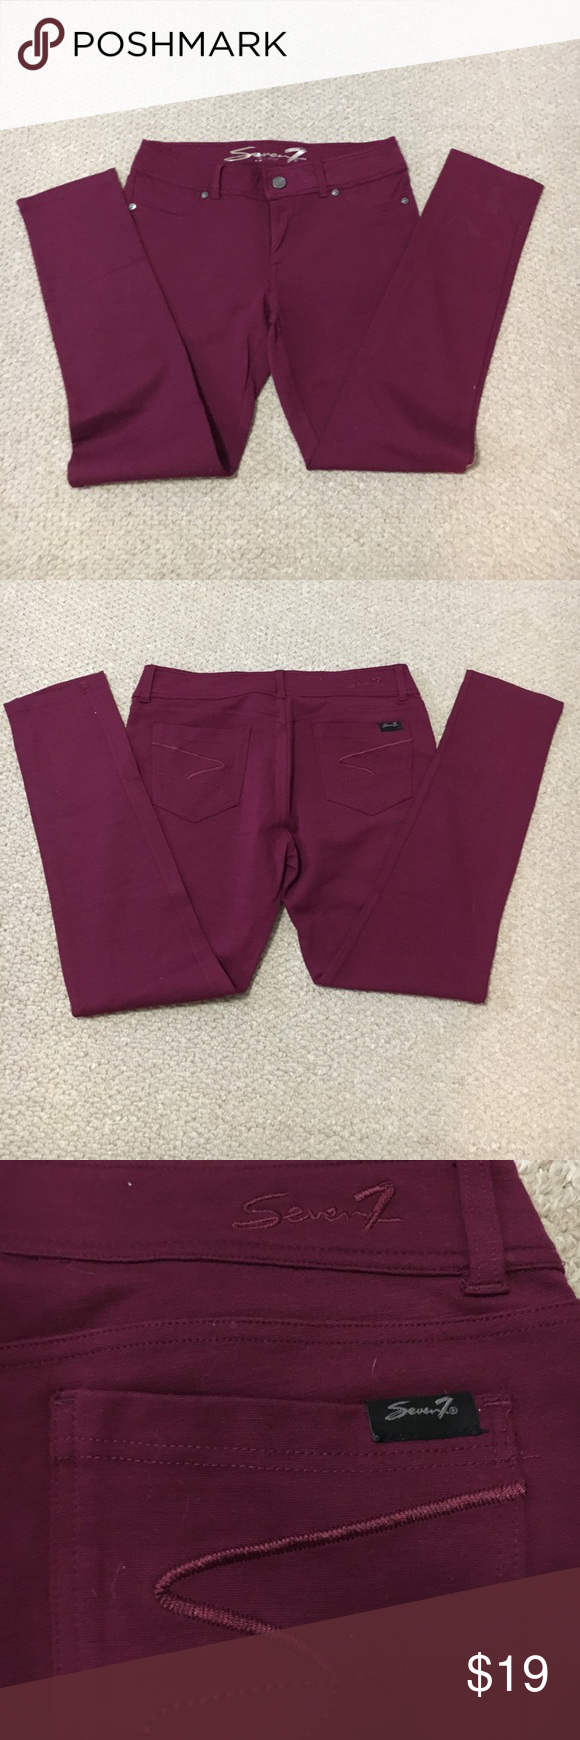 NWOT Seven Knit Jegging ✔️Seven Knit Jegging Burgandy Color ✔️Button and zip front closure ✔️Belt loops ✔️ Stretch/flattering design ✔️NWOT, never worn Seven7 Pants Leggings